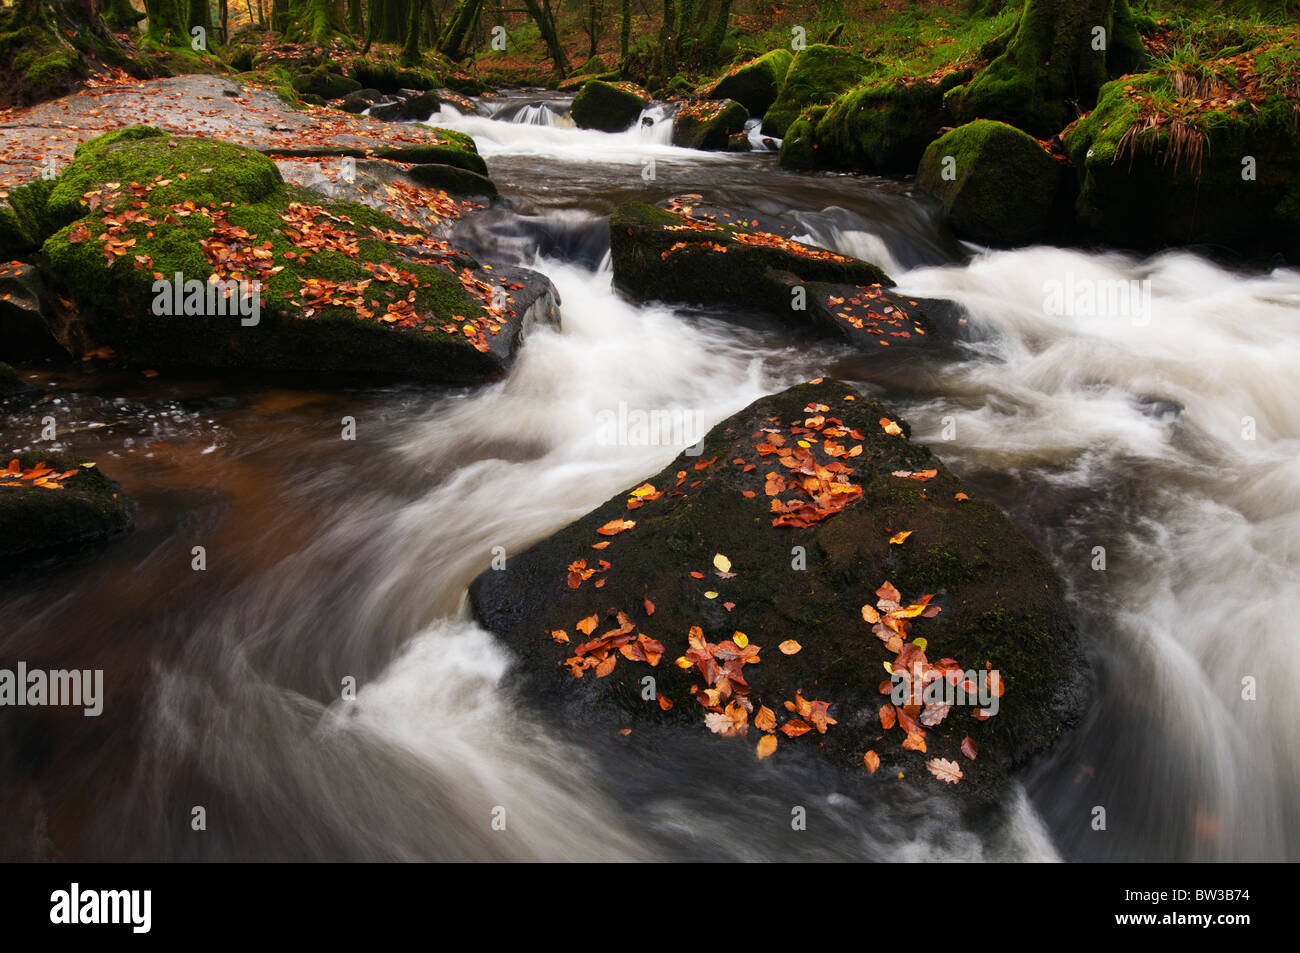 Fallen Autumn leaves at Golitha Falls on the River Fowey near Liskeard, Cornwall - Stock Image